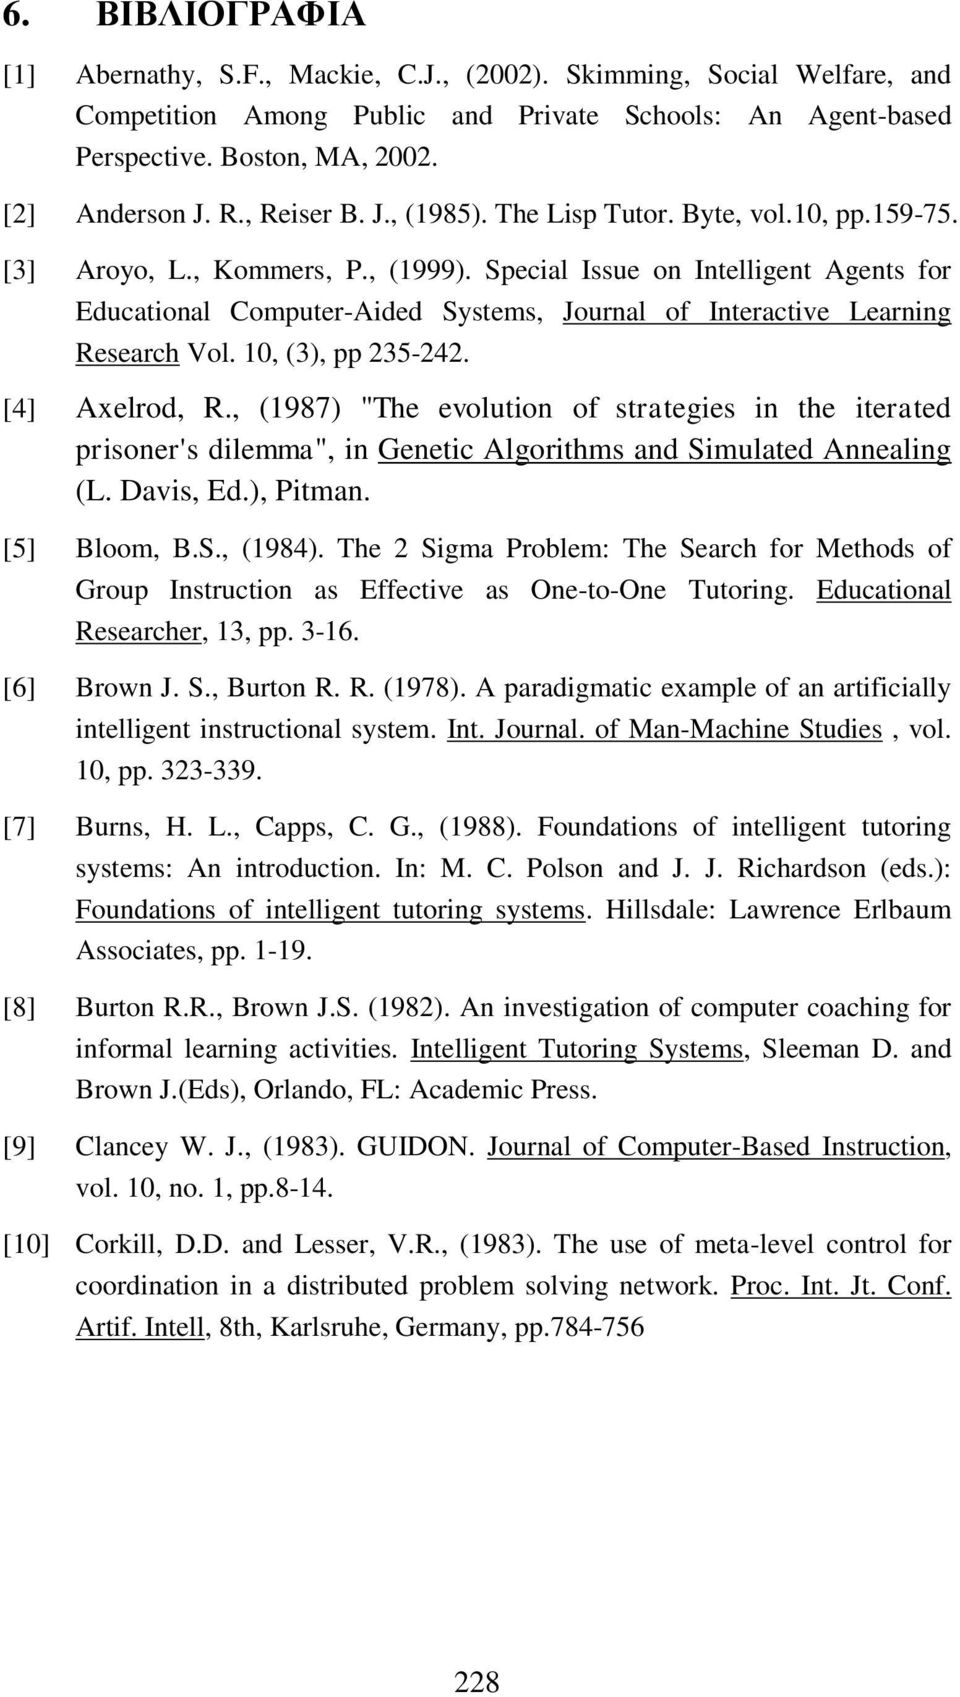 Special Issue on Intelligent Agents for Educational Computer-Aided Systems, Journal of Interactive Learning Research Vol. 10, (3), pp 235-242. [4] Axelrod, R.